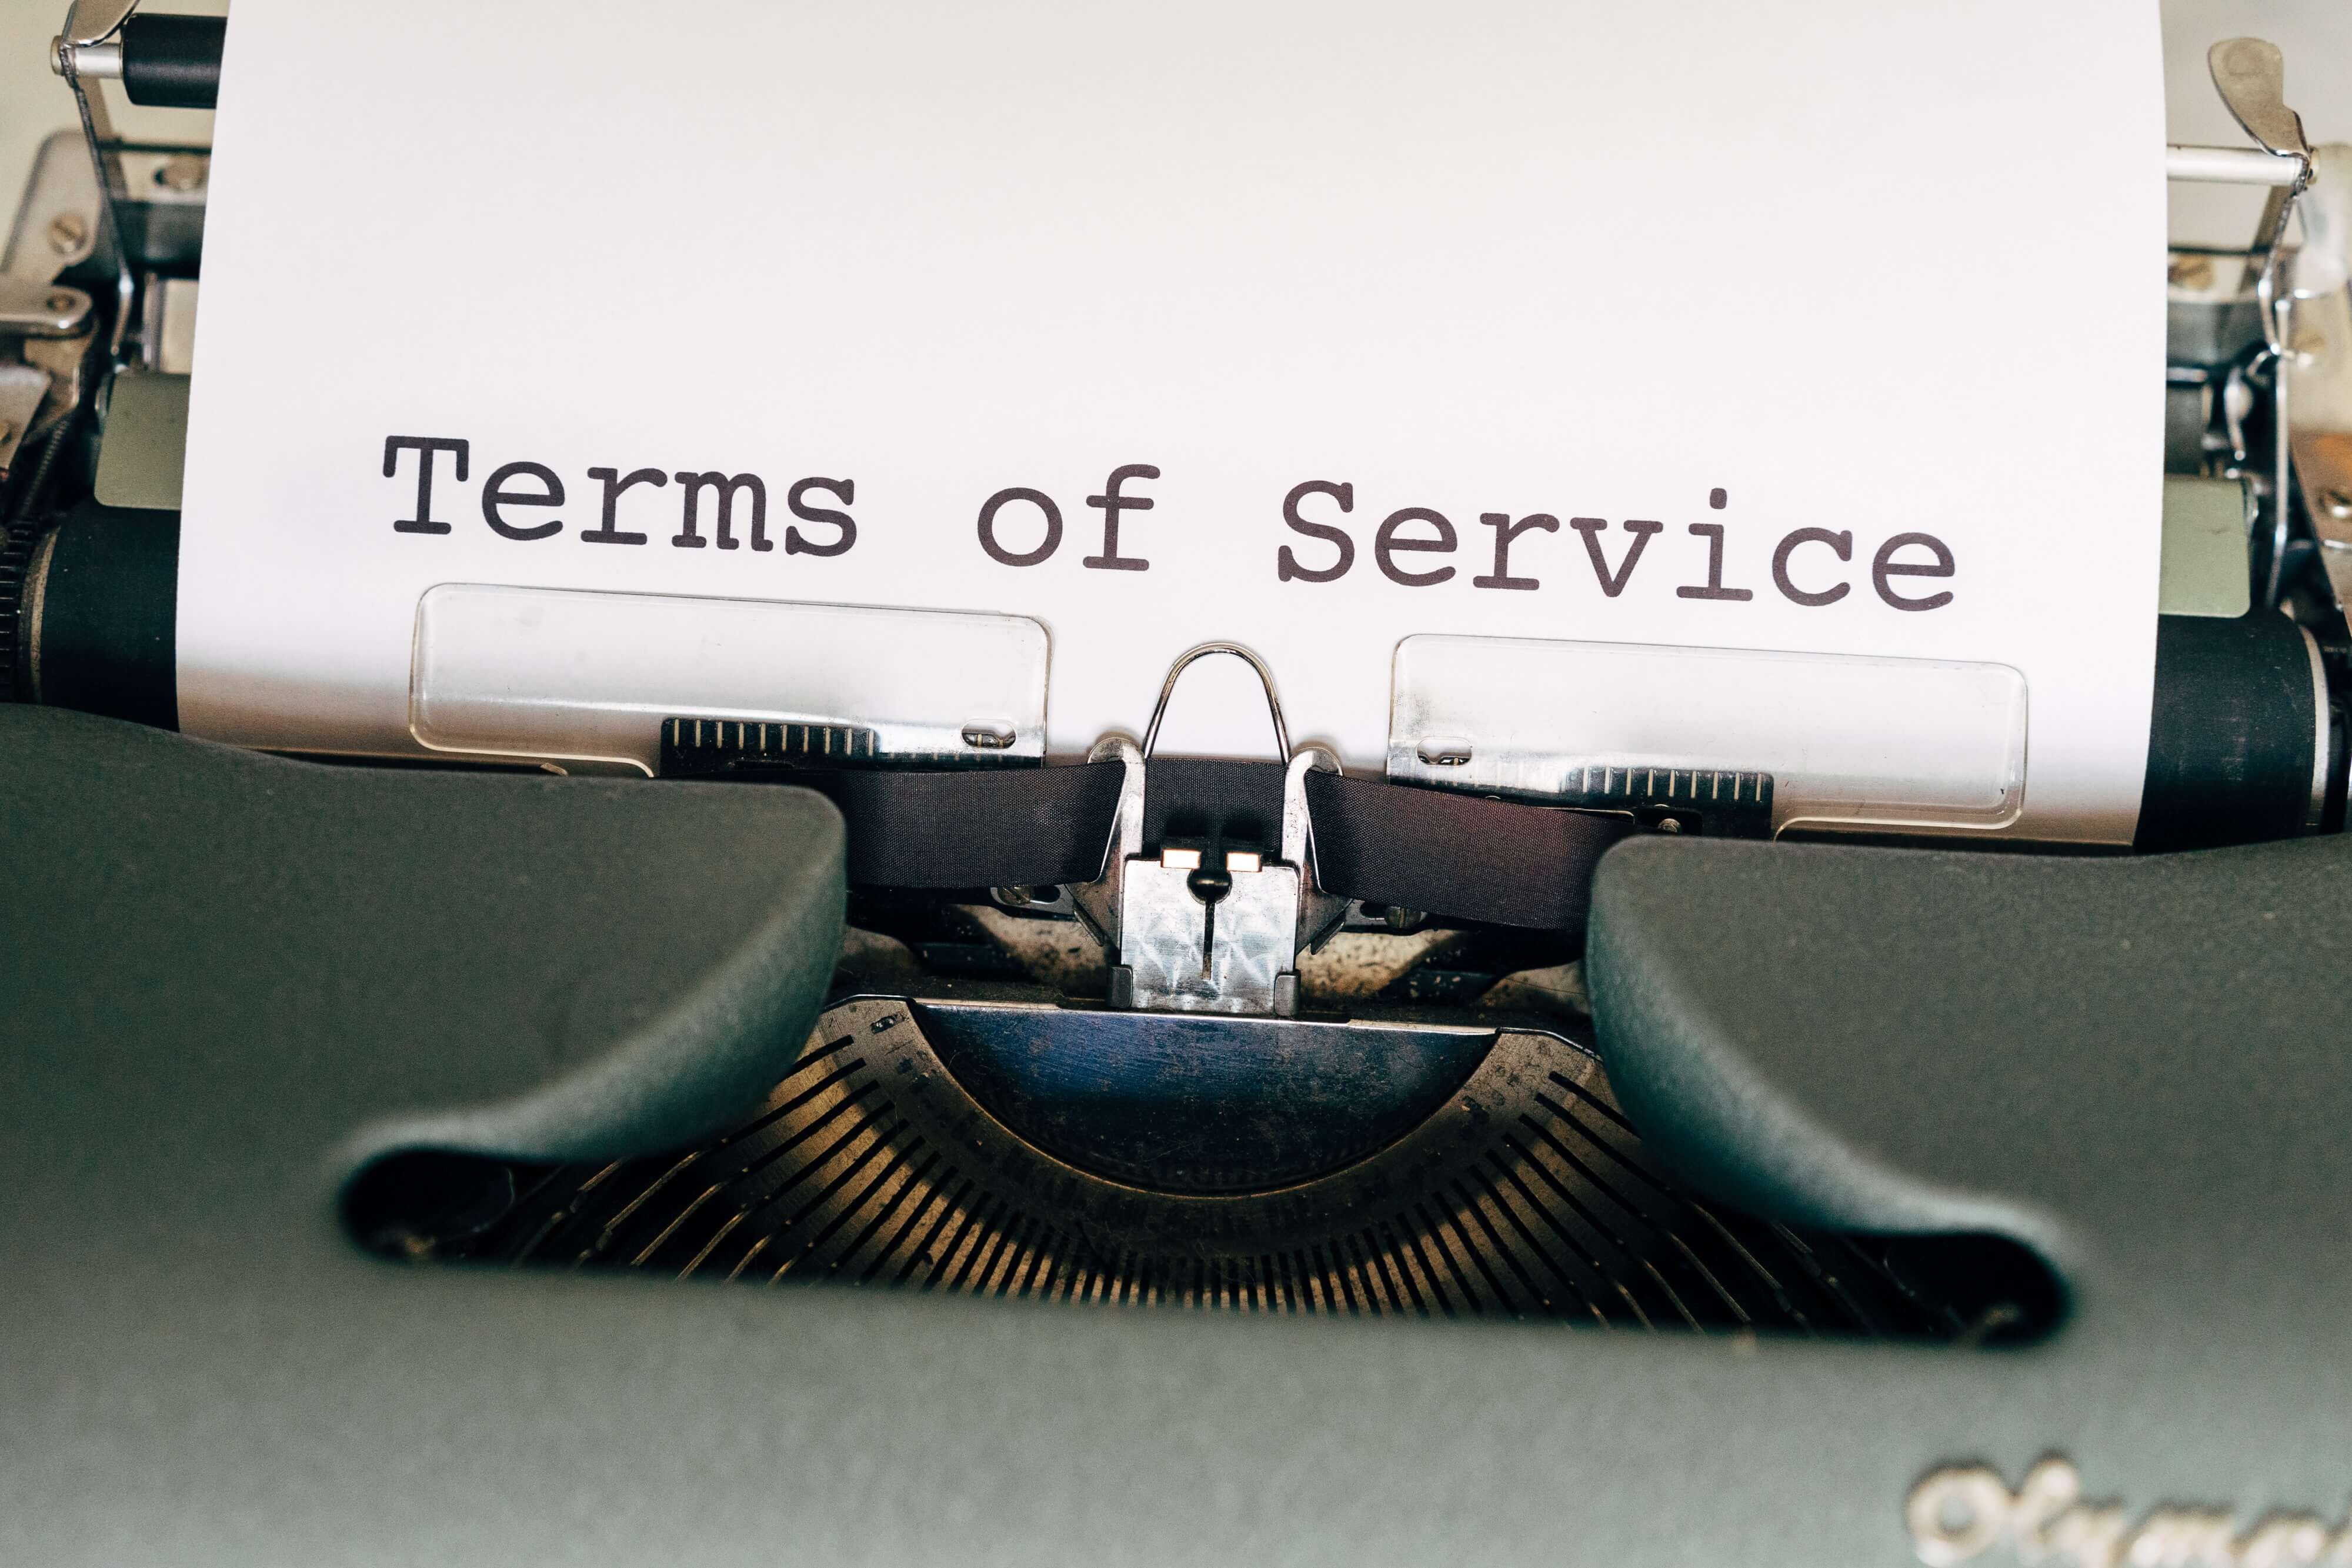 Terms of service may forbid any kind of automatic data collection.